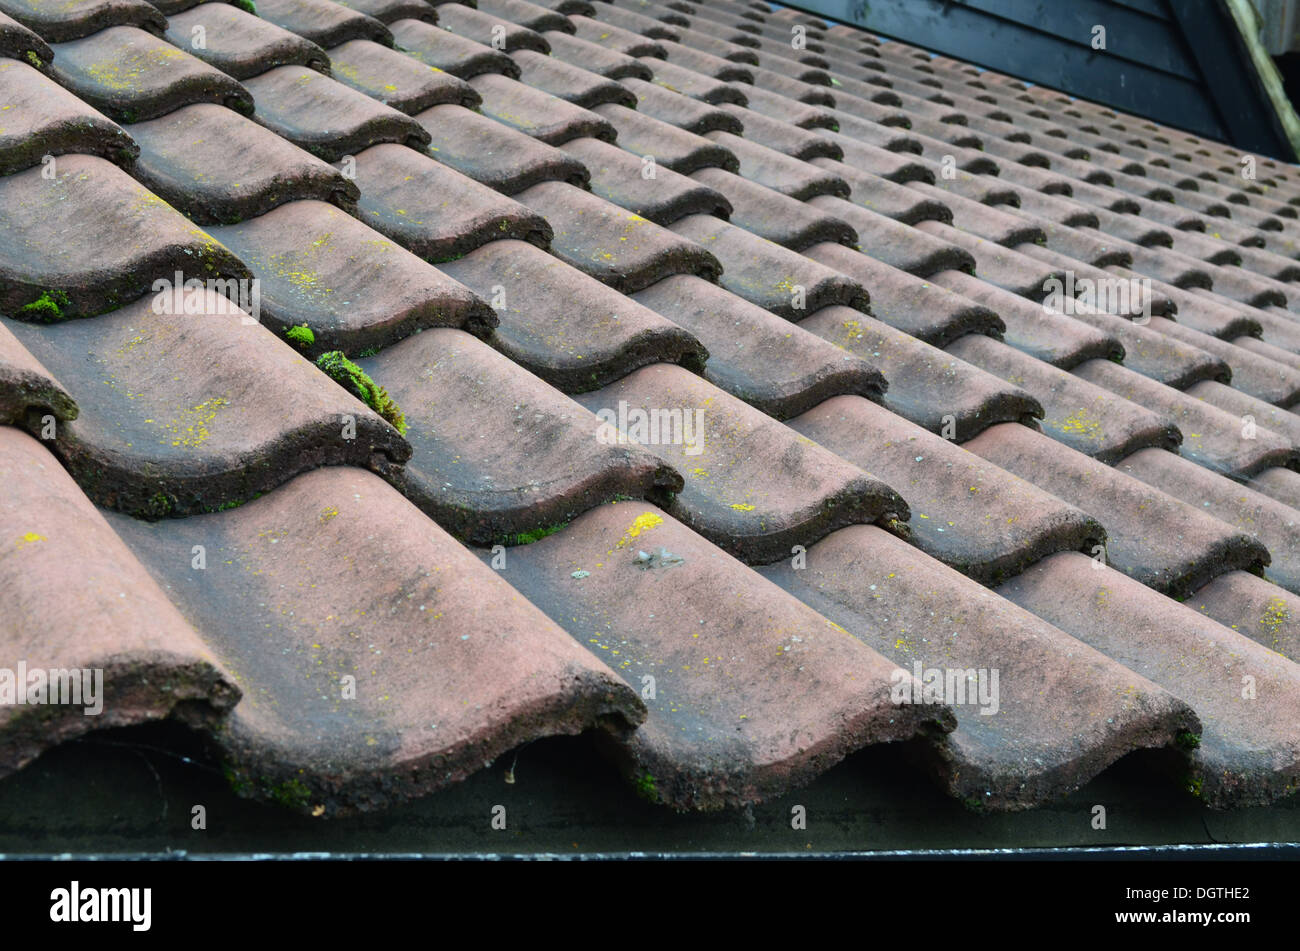 Wavy Clay Roof Tiles Stock Photo 62006170 Alamy